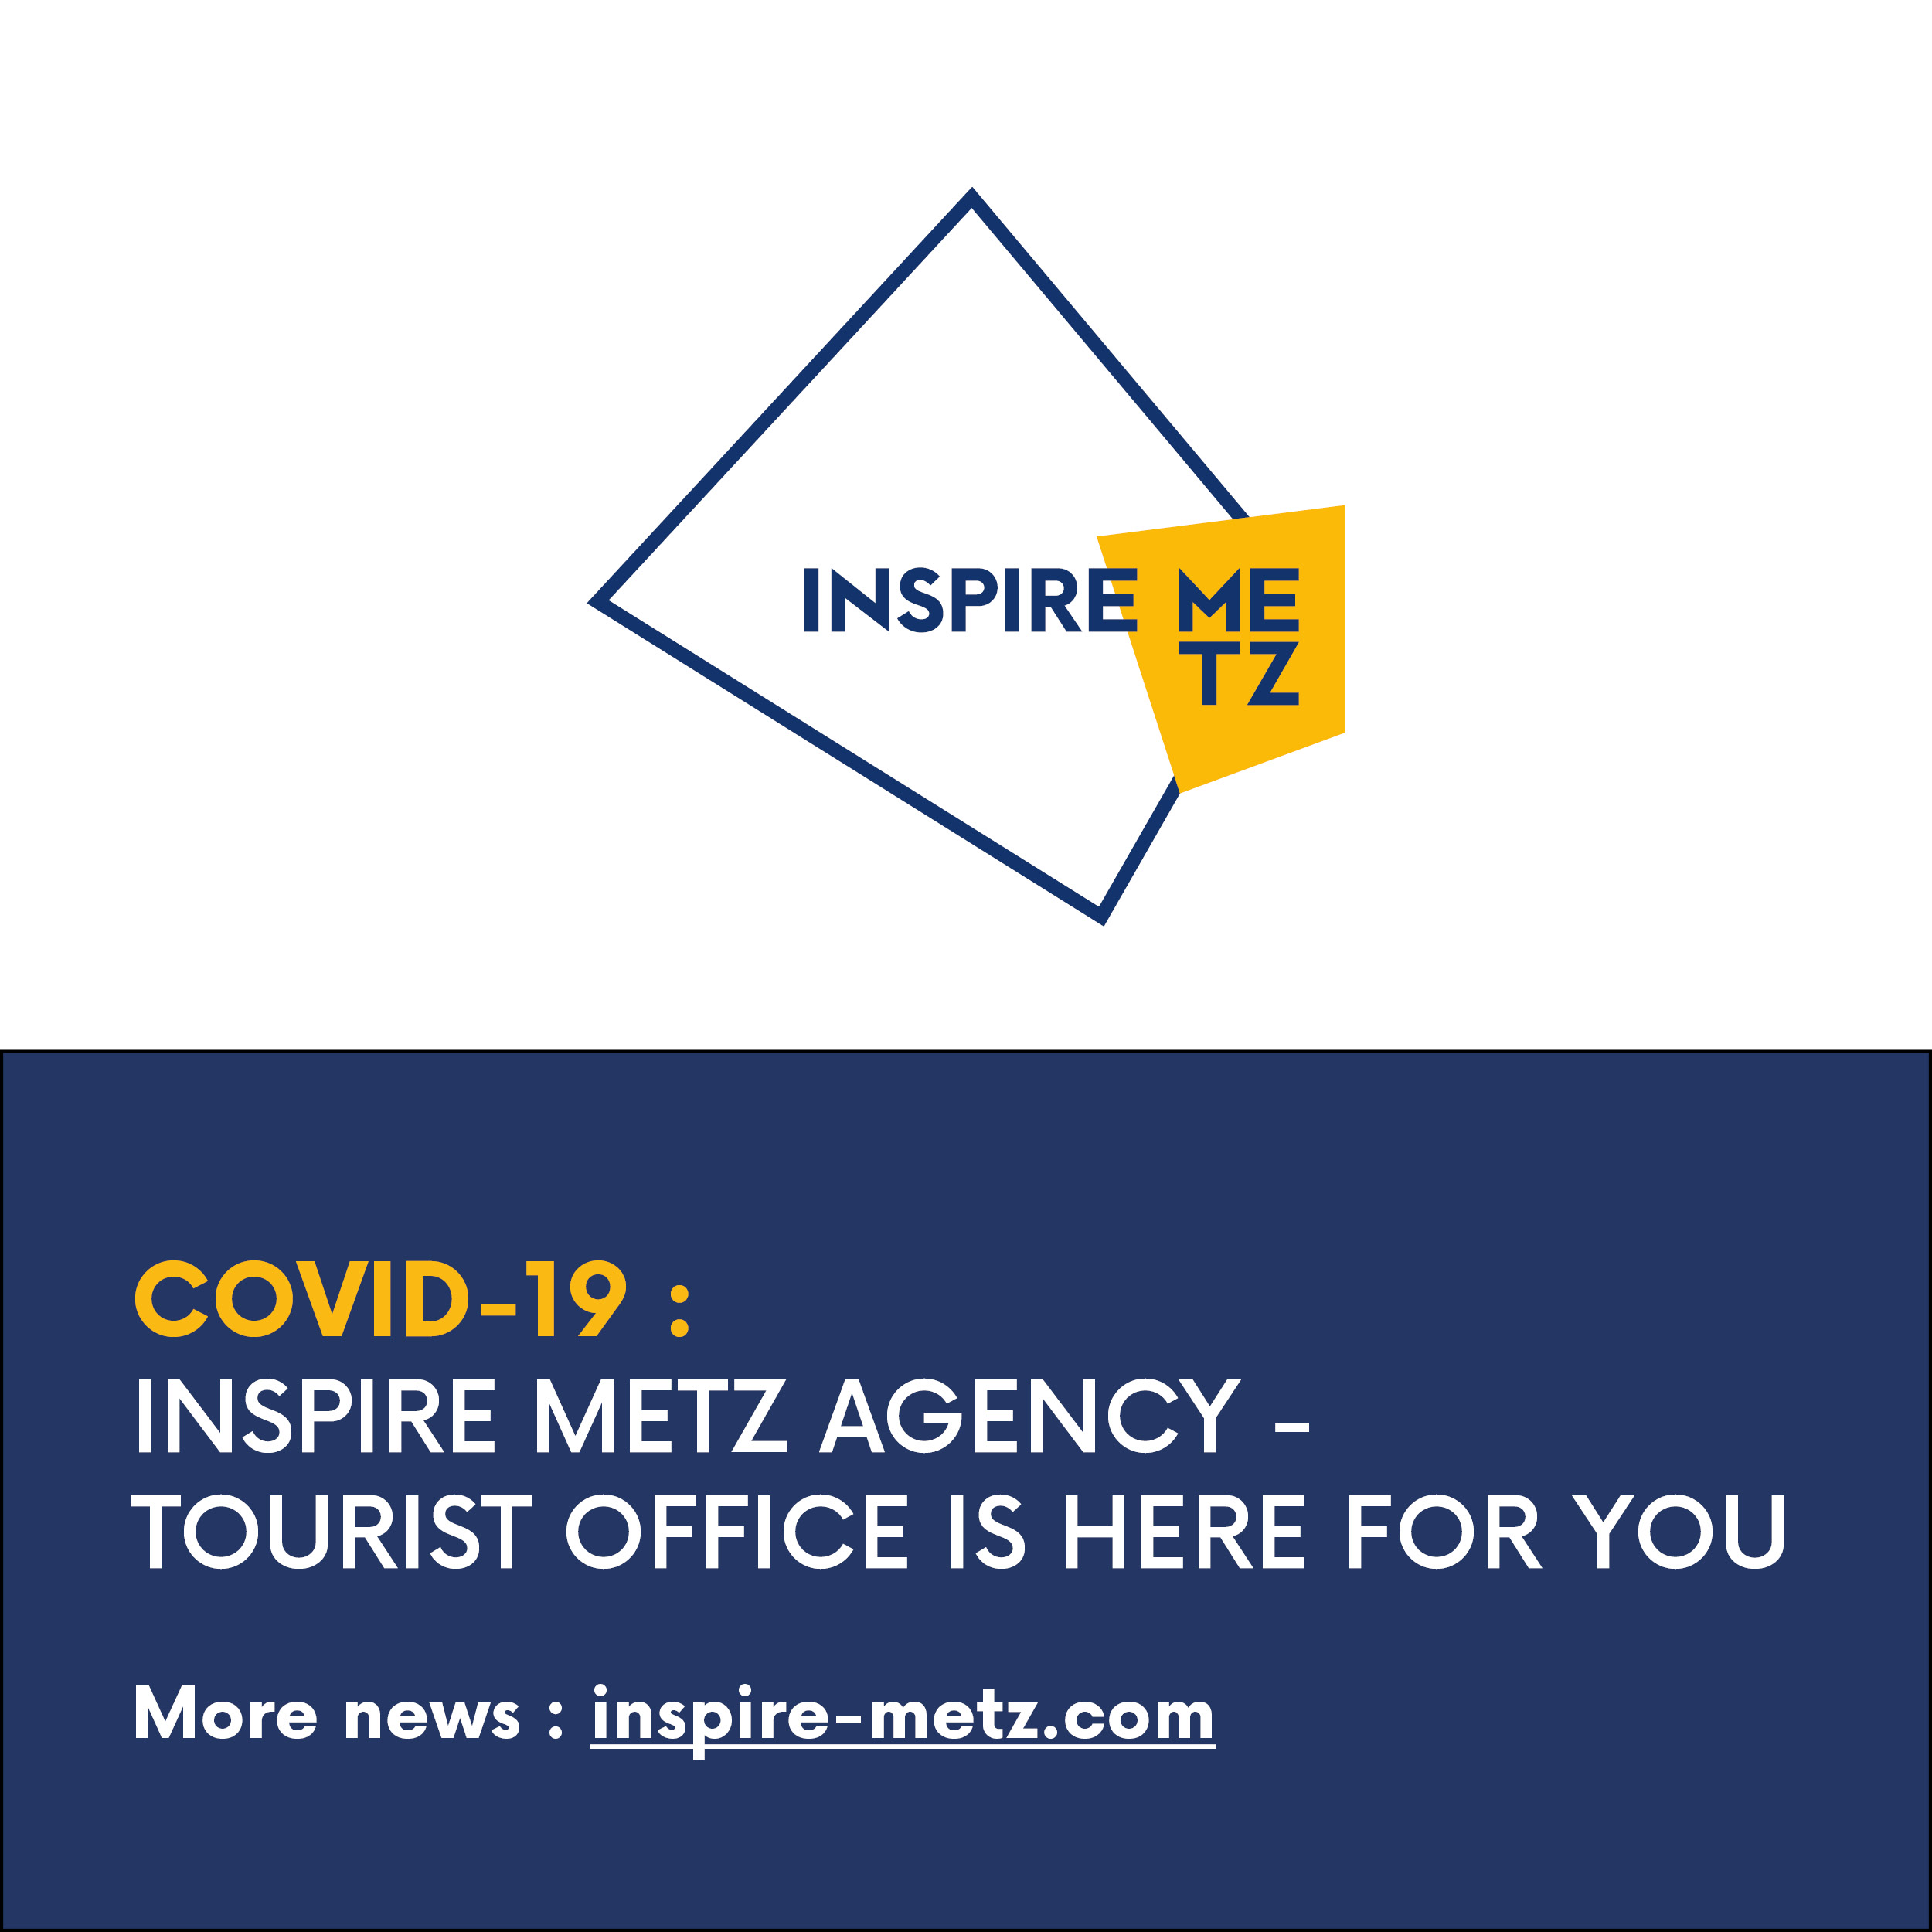 Covid-19: Inspire Metz agency - Tourist Office is here for you